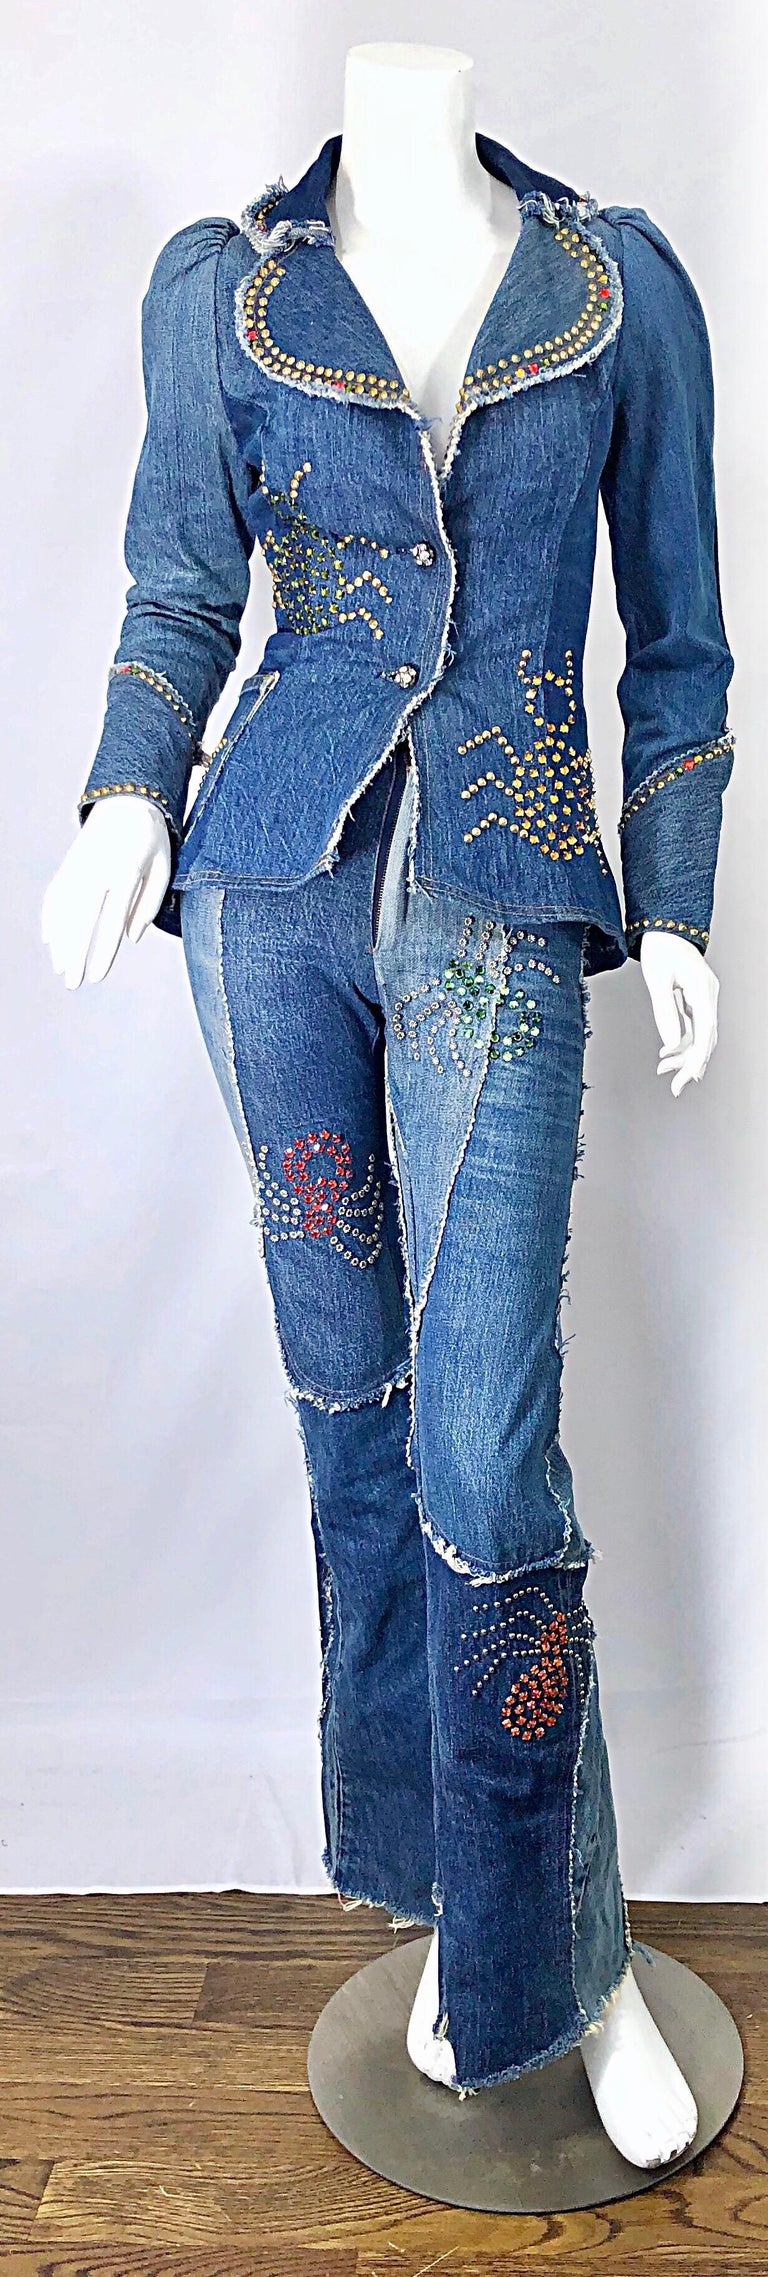 Musuem Piece Love, Melody Sabatasso 1970s Custom Blue Jean Denim Rhinestone Suit In Good Condition For Sale In Chicago, IL